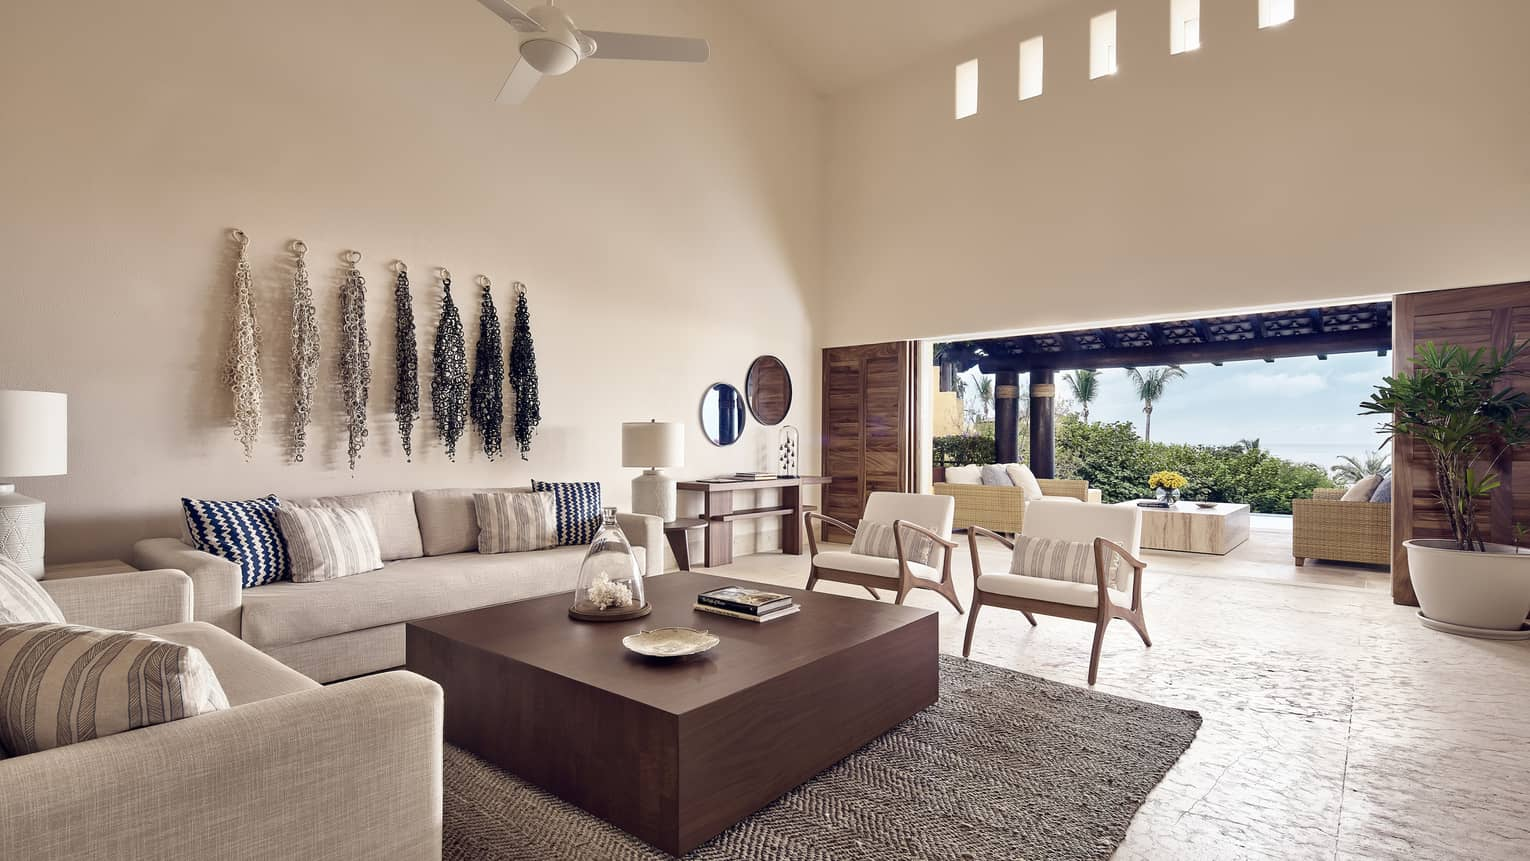 White linen sofas around large wood coffee table in bright living room, open patio wall